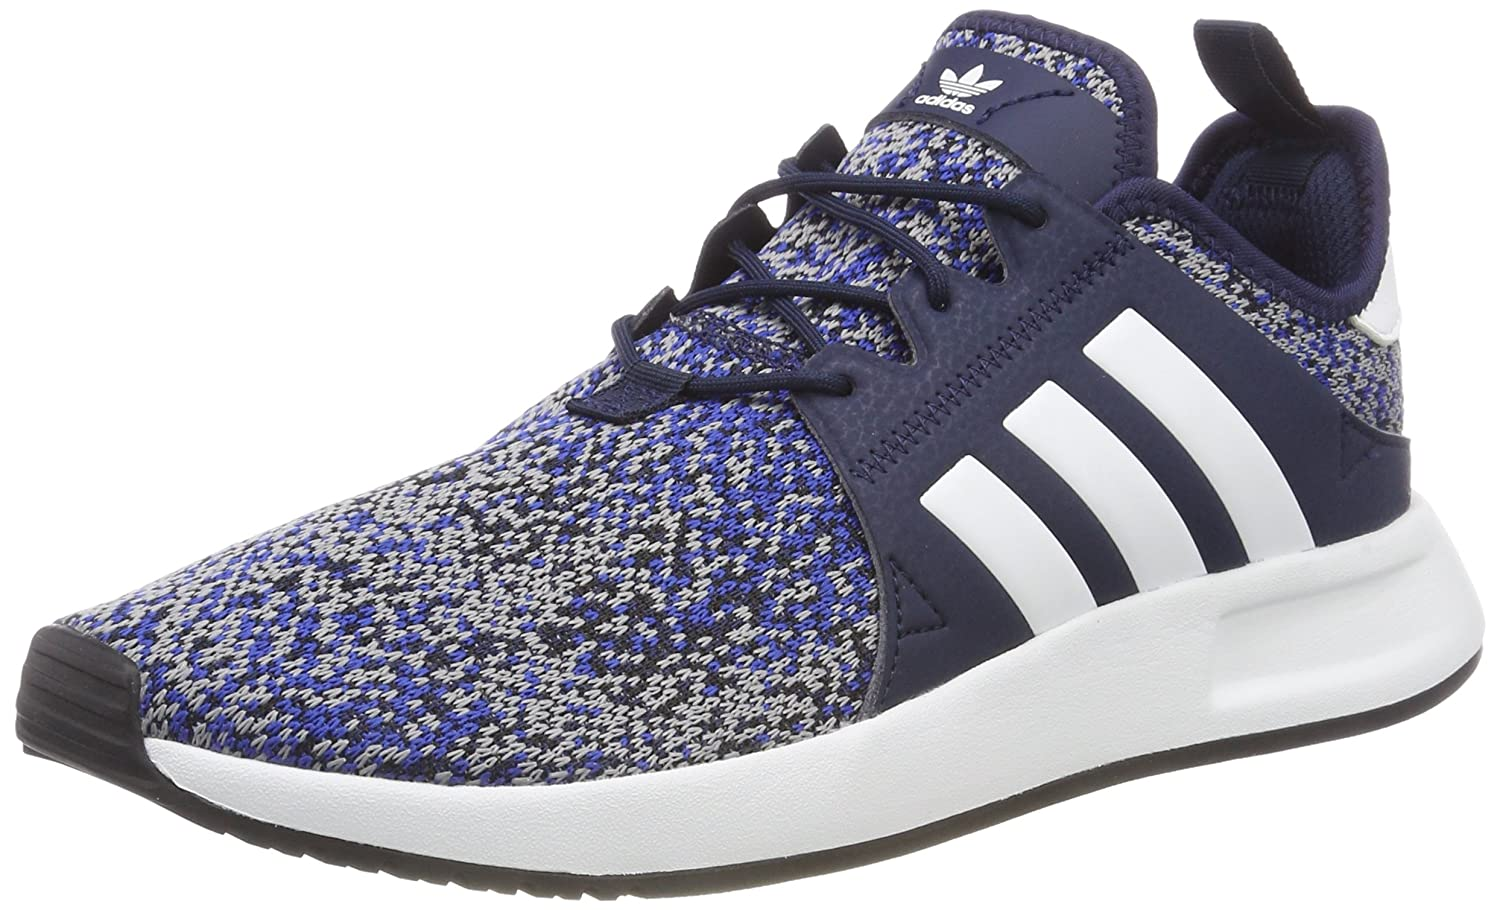 Man's/Woman's adidas Men''s X_PLR Gymnastics Shoes Every Every Every item described is available Fast delivery Cheap order ad13ec